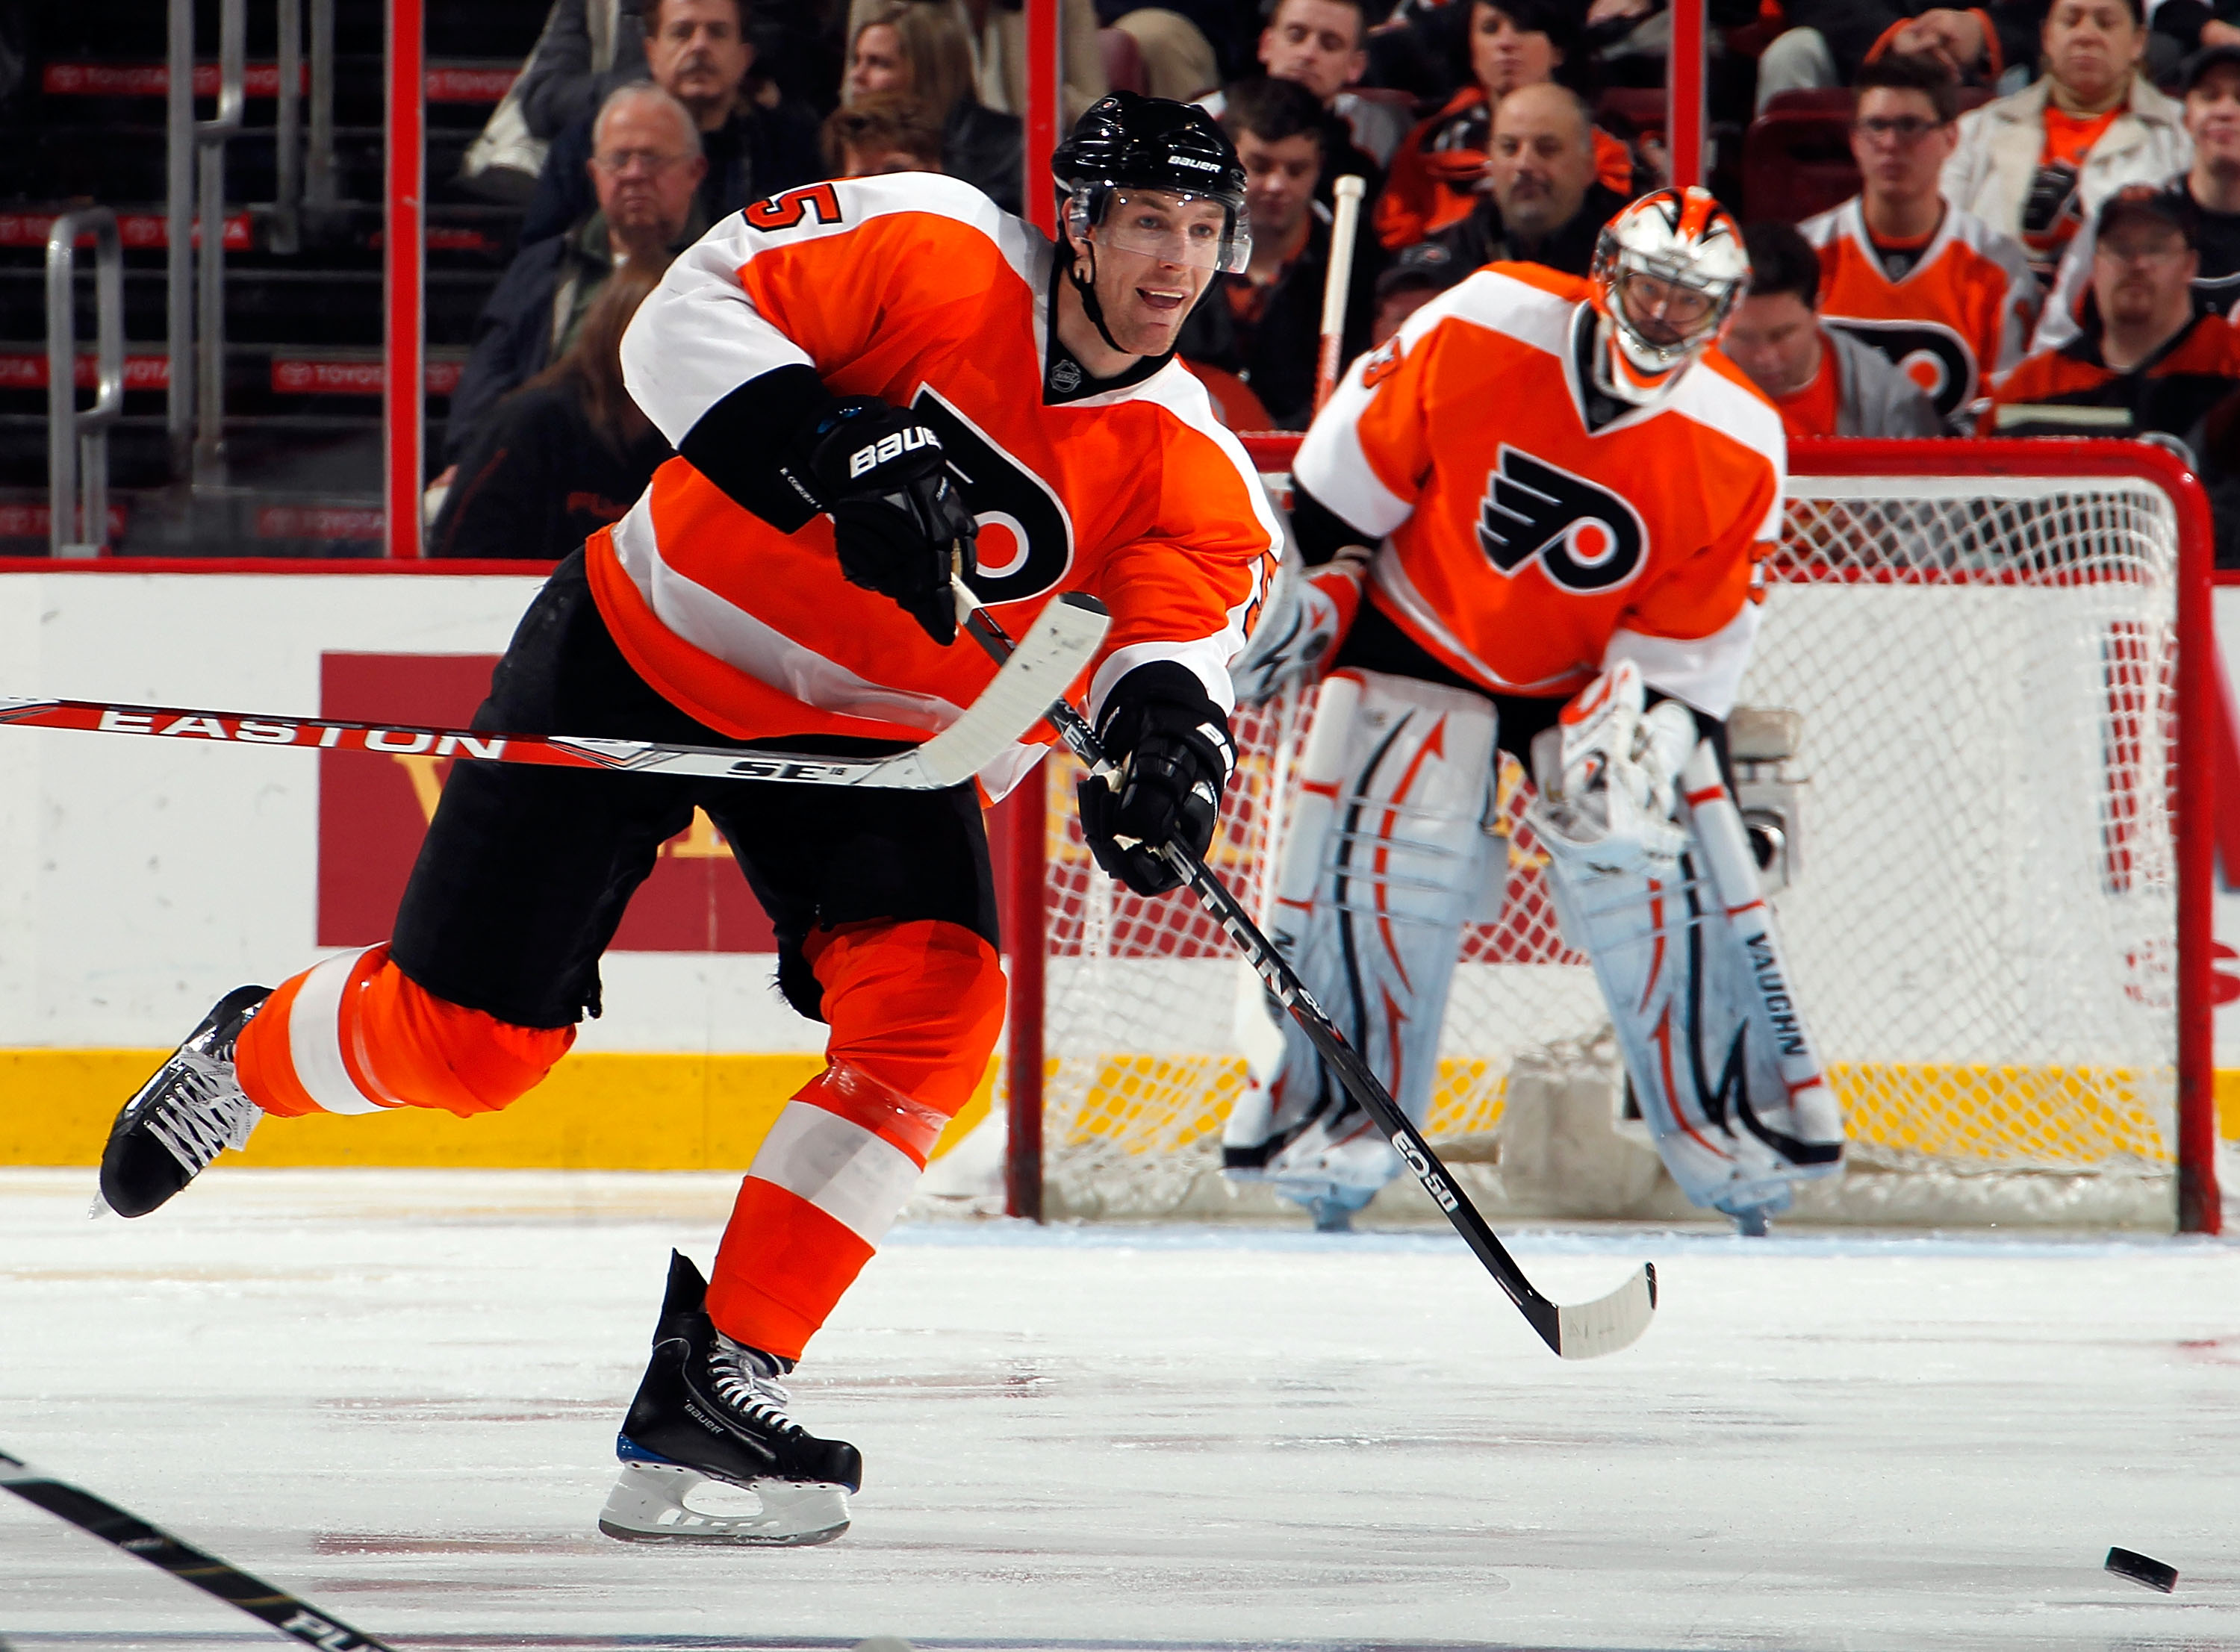 PHILADELPHIA, PA - MARCH 22:  Braydon Coburn #5 of the Philadelphia Flyers clears the puck during an NHL hockey game against the Washington Capitals at the Wells Fargo Center on March 22, 2011 in Philadelphia, Pennsylvania.  (Photo by Paul Bereswill/Getty